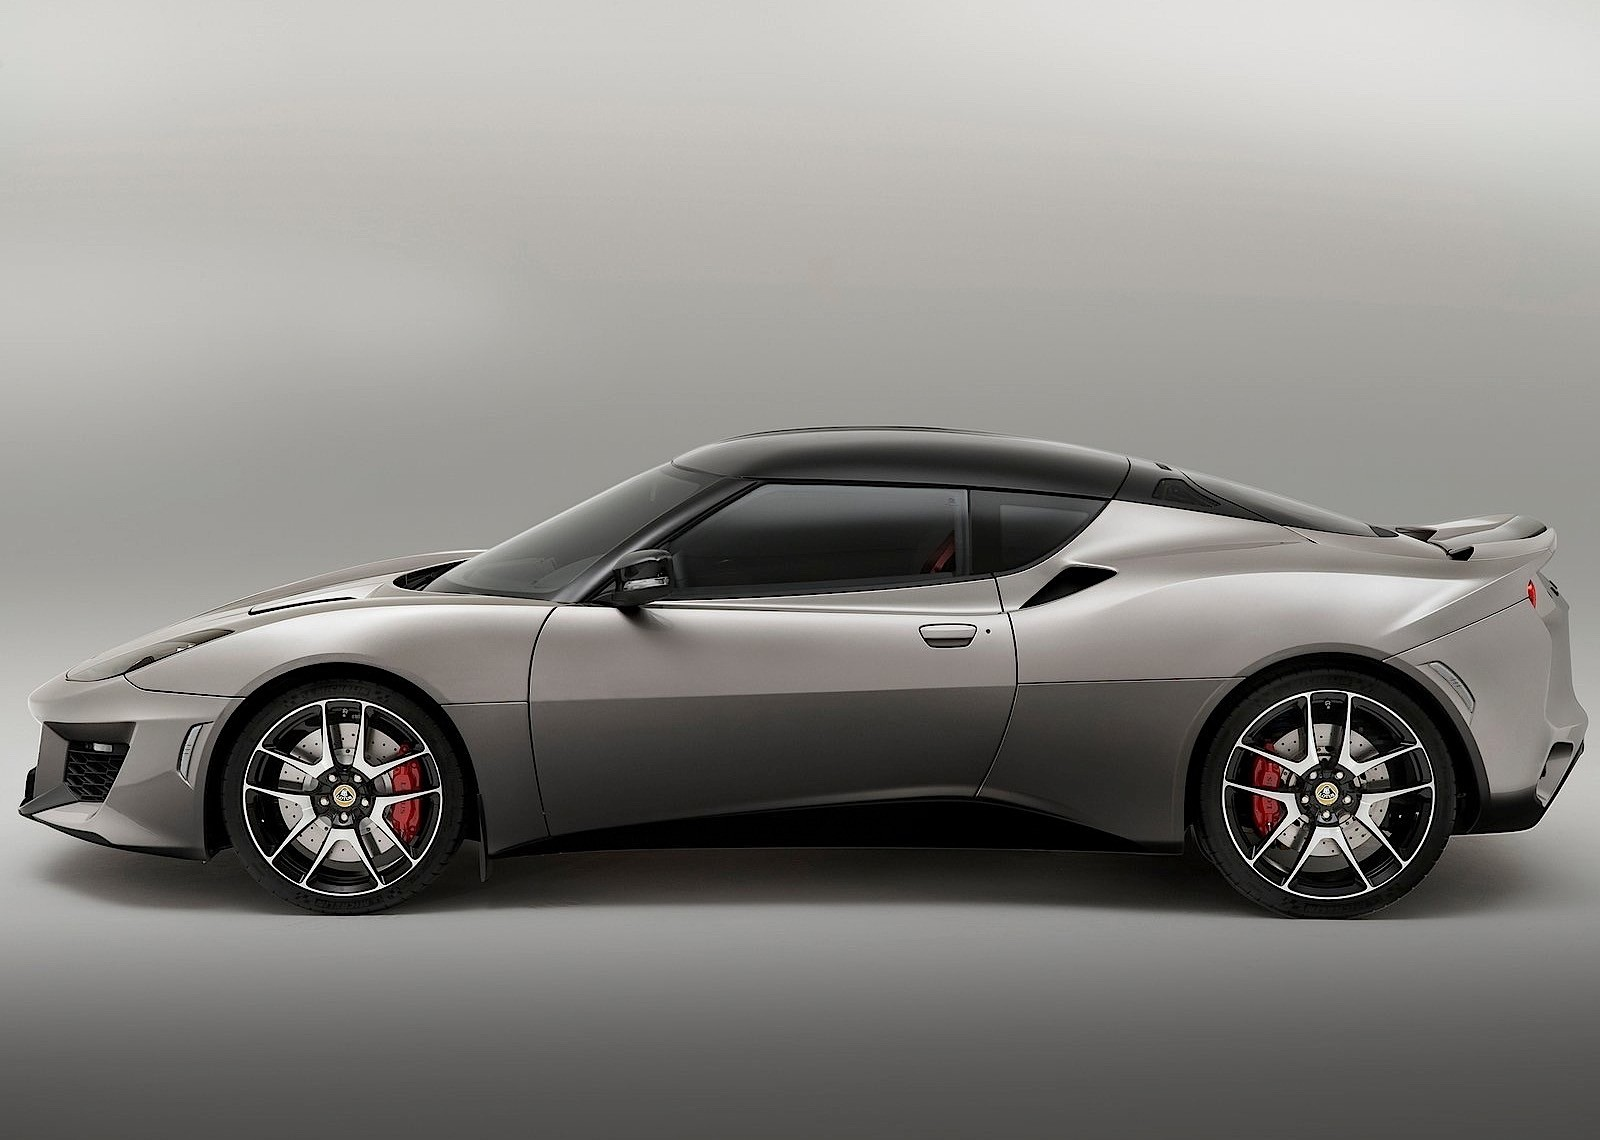 38 New 2019 Lotus Evora Release Date and Concept